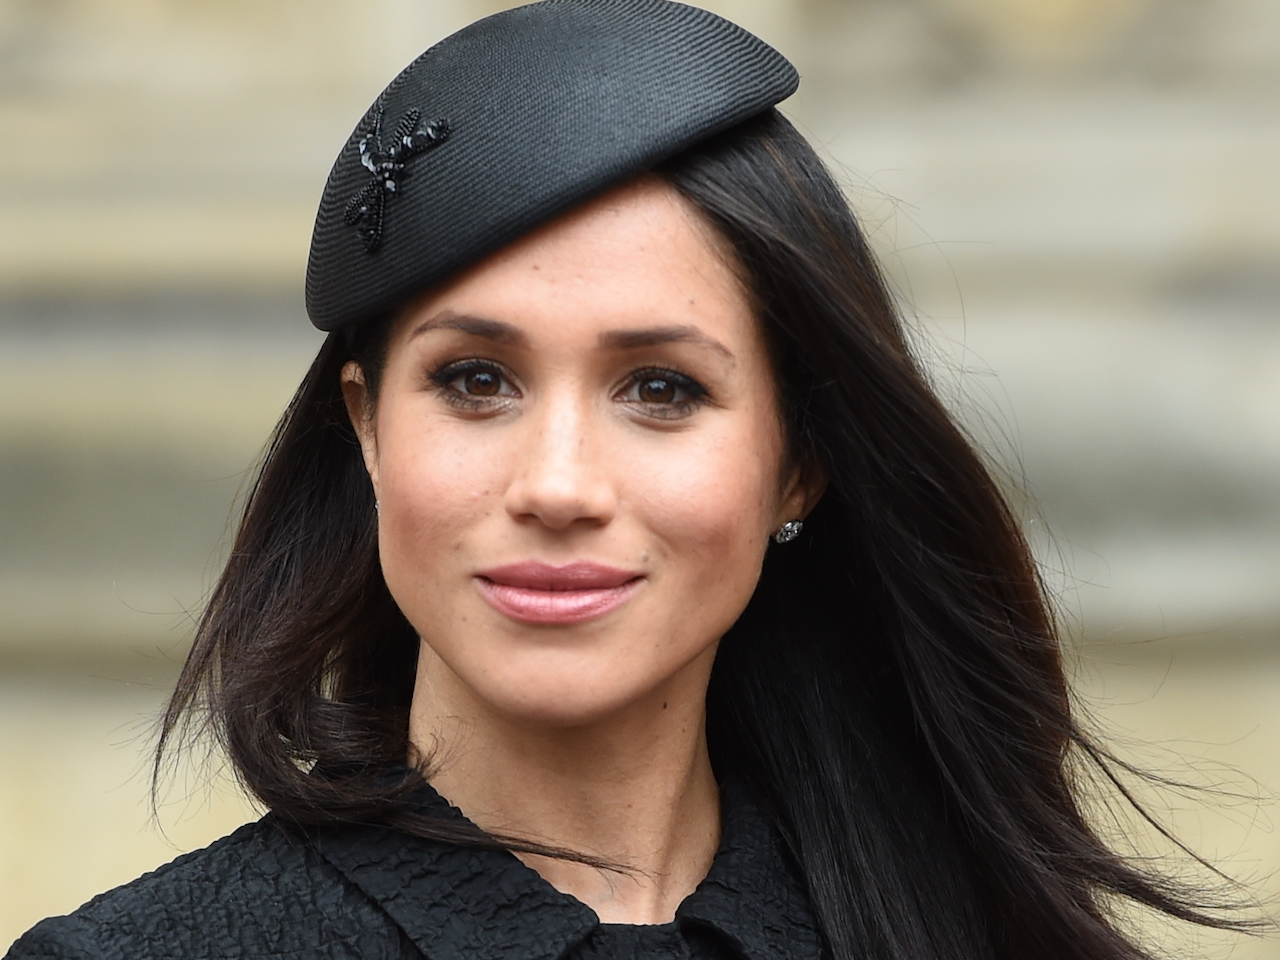 Meghan Markle, who will marry Prince Harry in a royal wedding